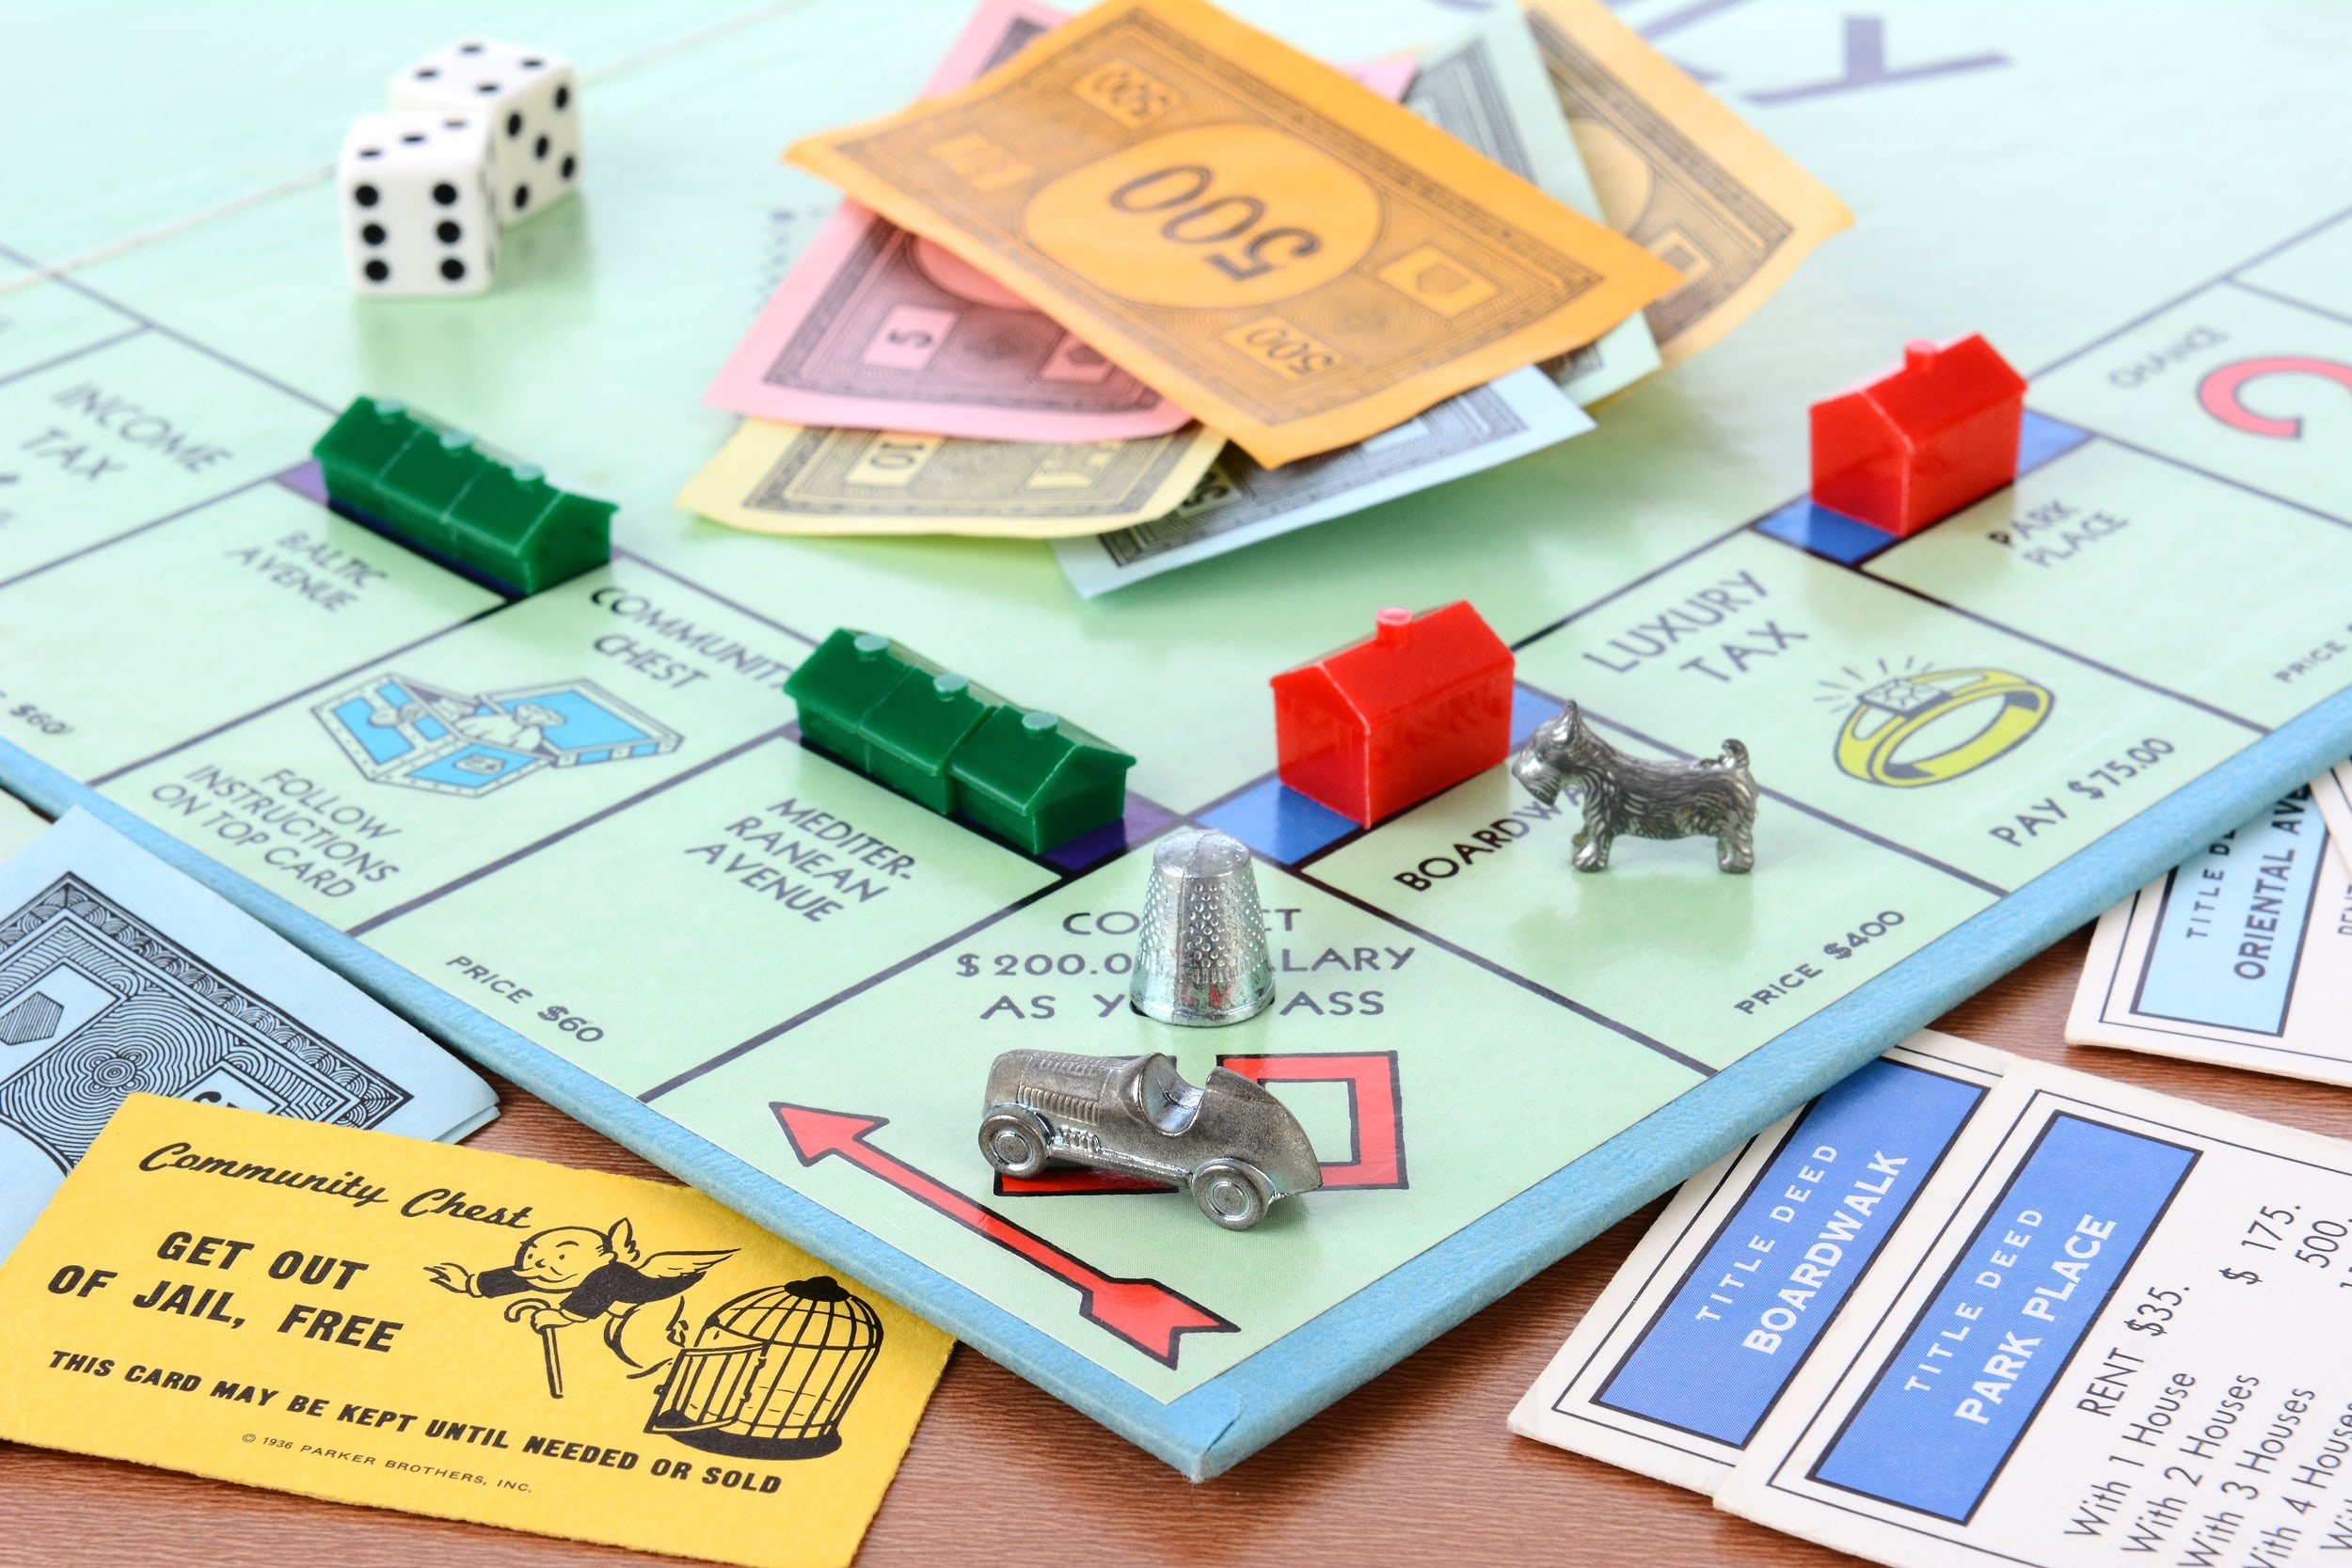 monopoly board during play